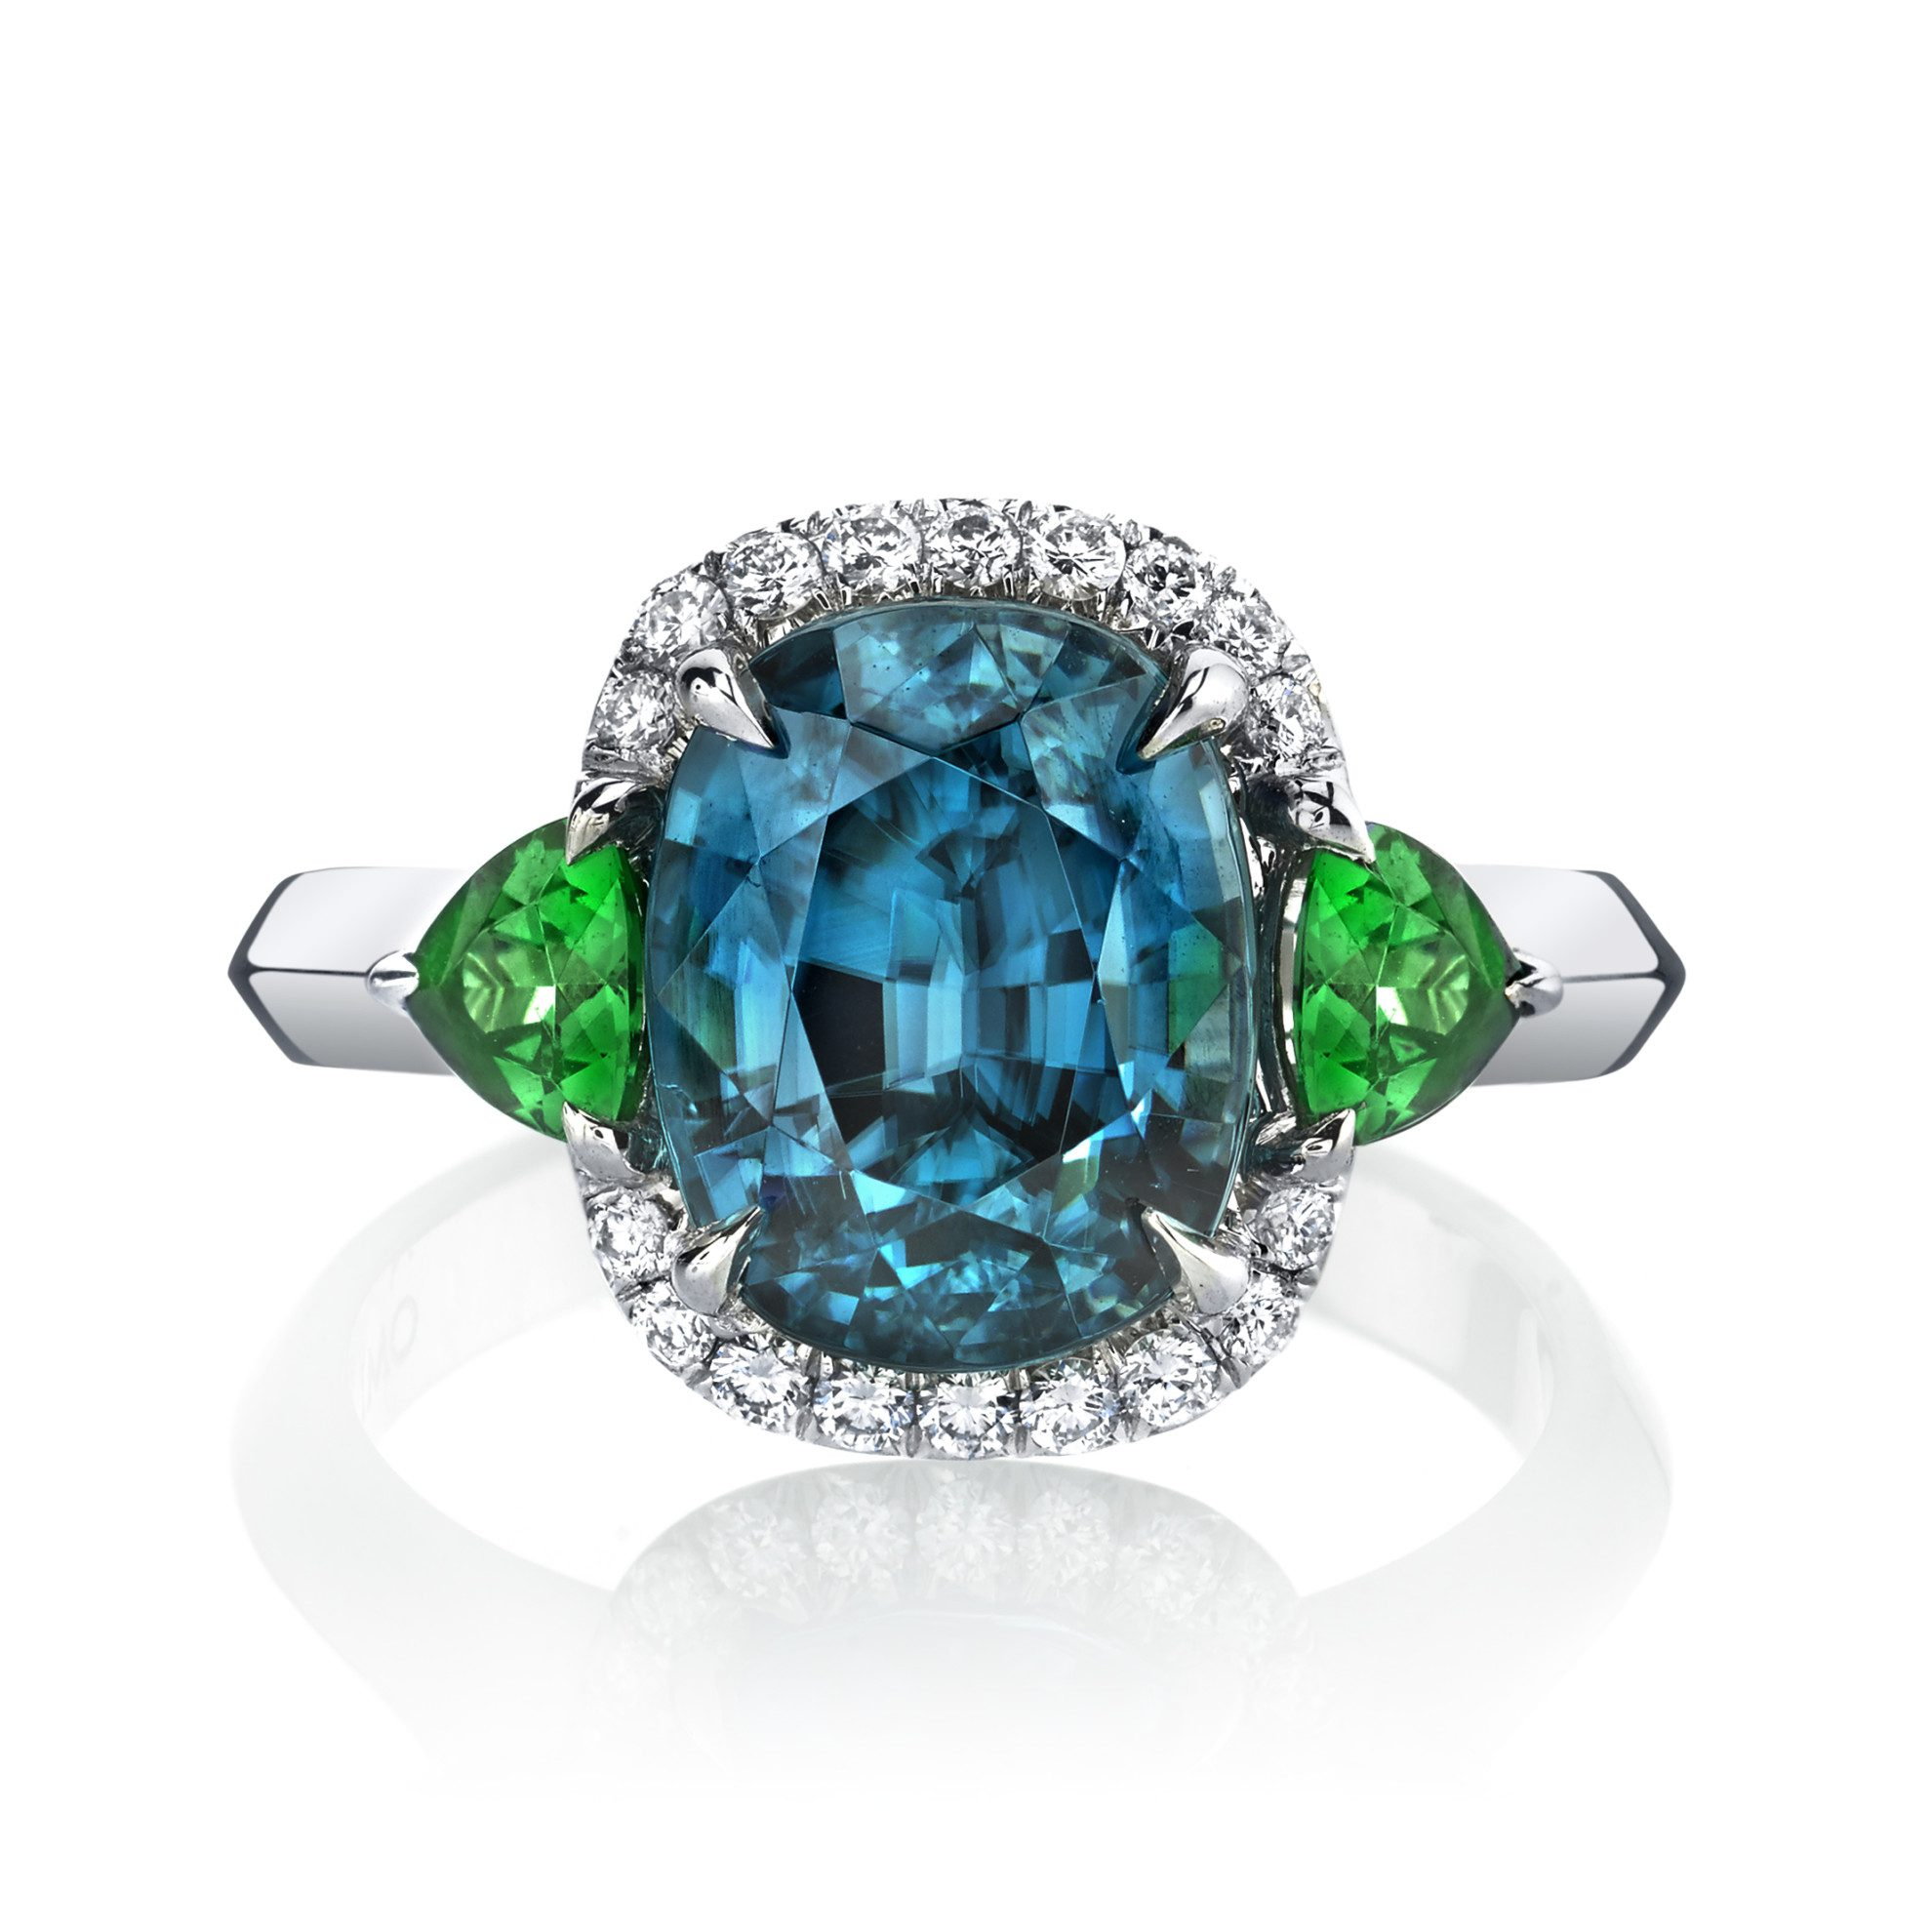 sapphire rings lotfinder ruby aggravi engagement and bangle gnv garnet tsavorite details diamond lot scampi